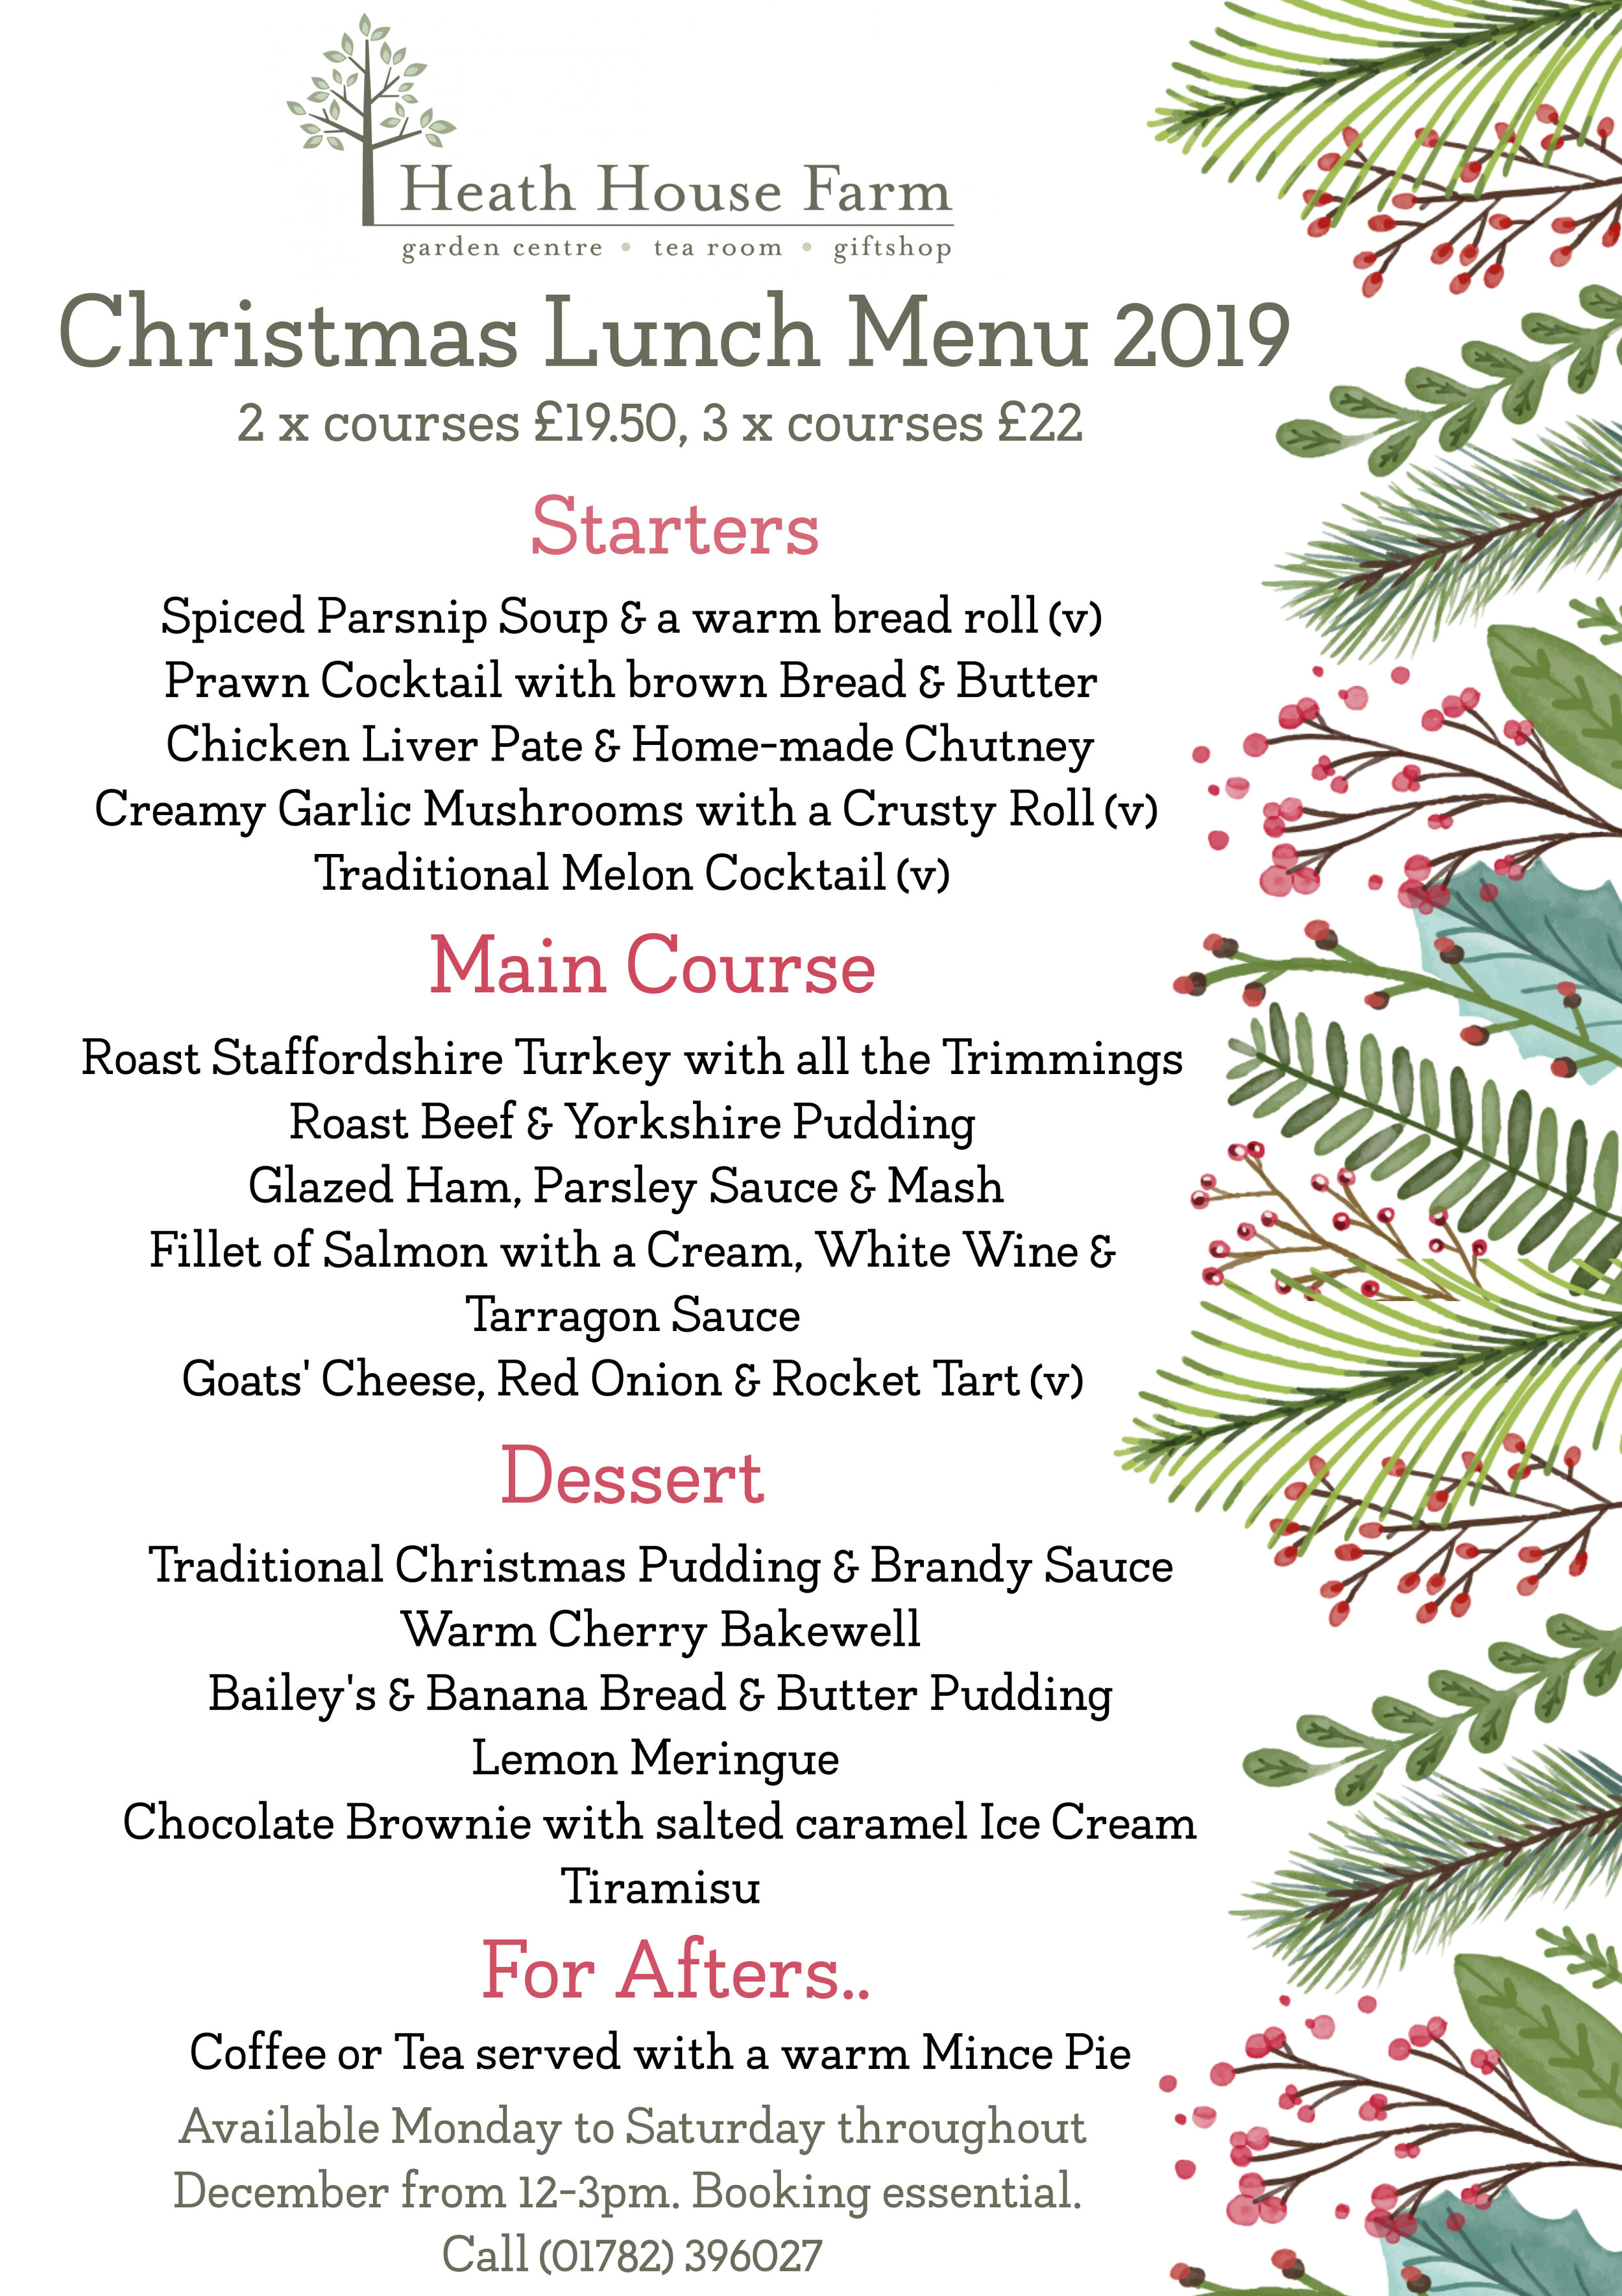 Christmas Lunch Menu 2019.jpg